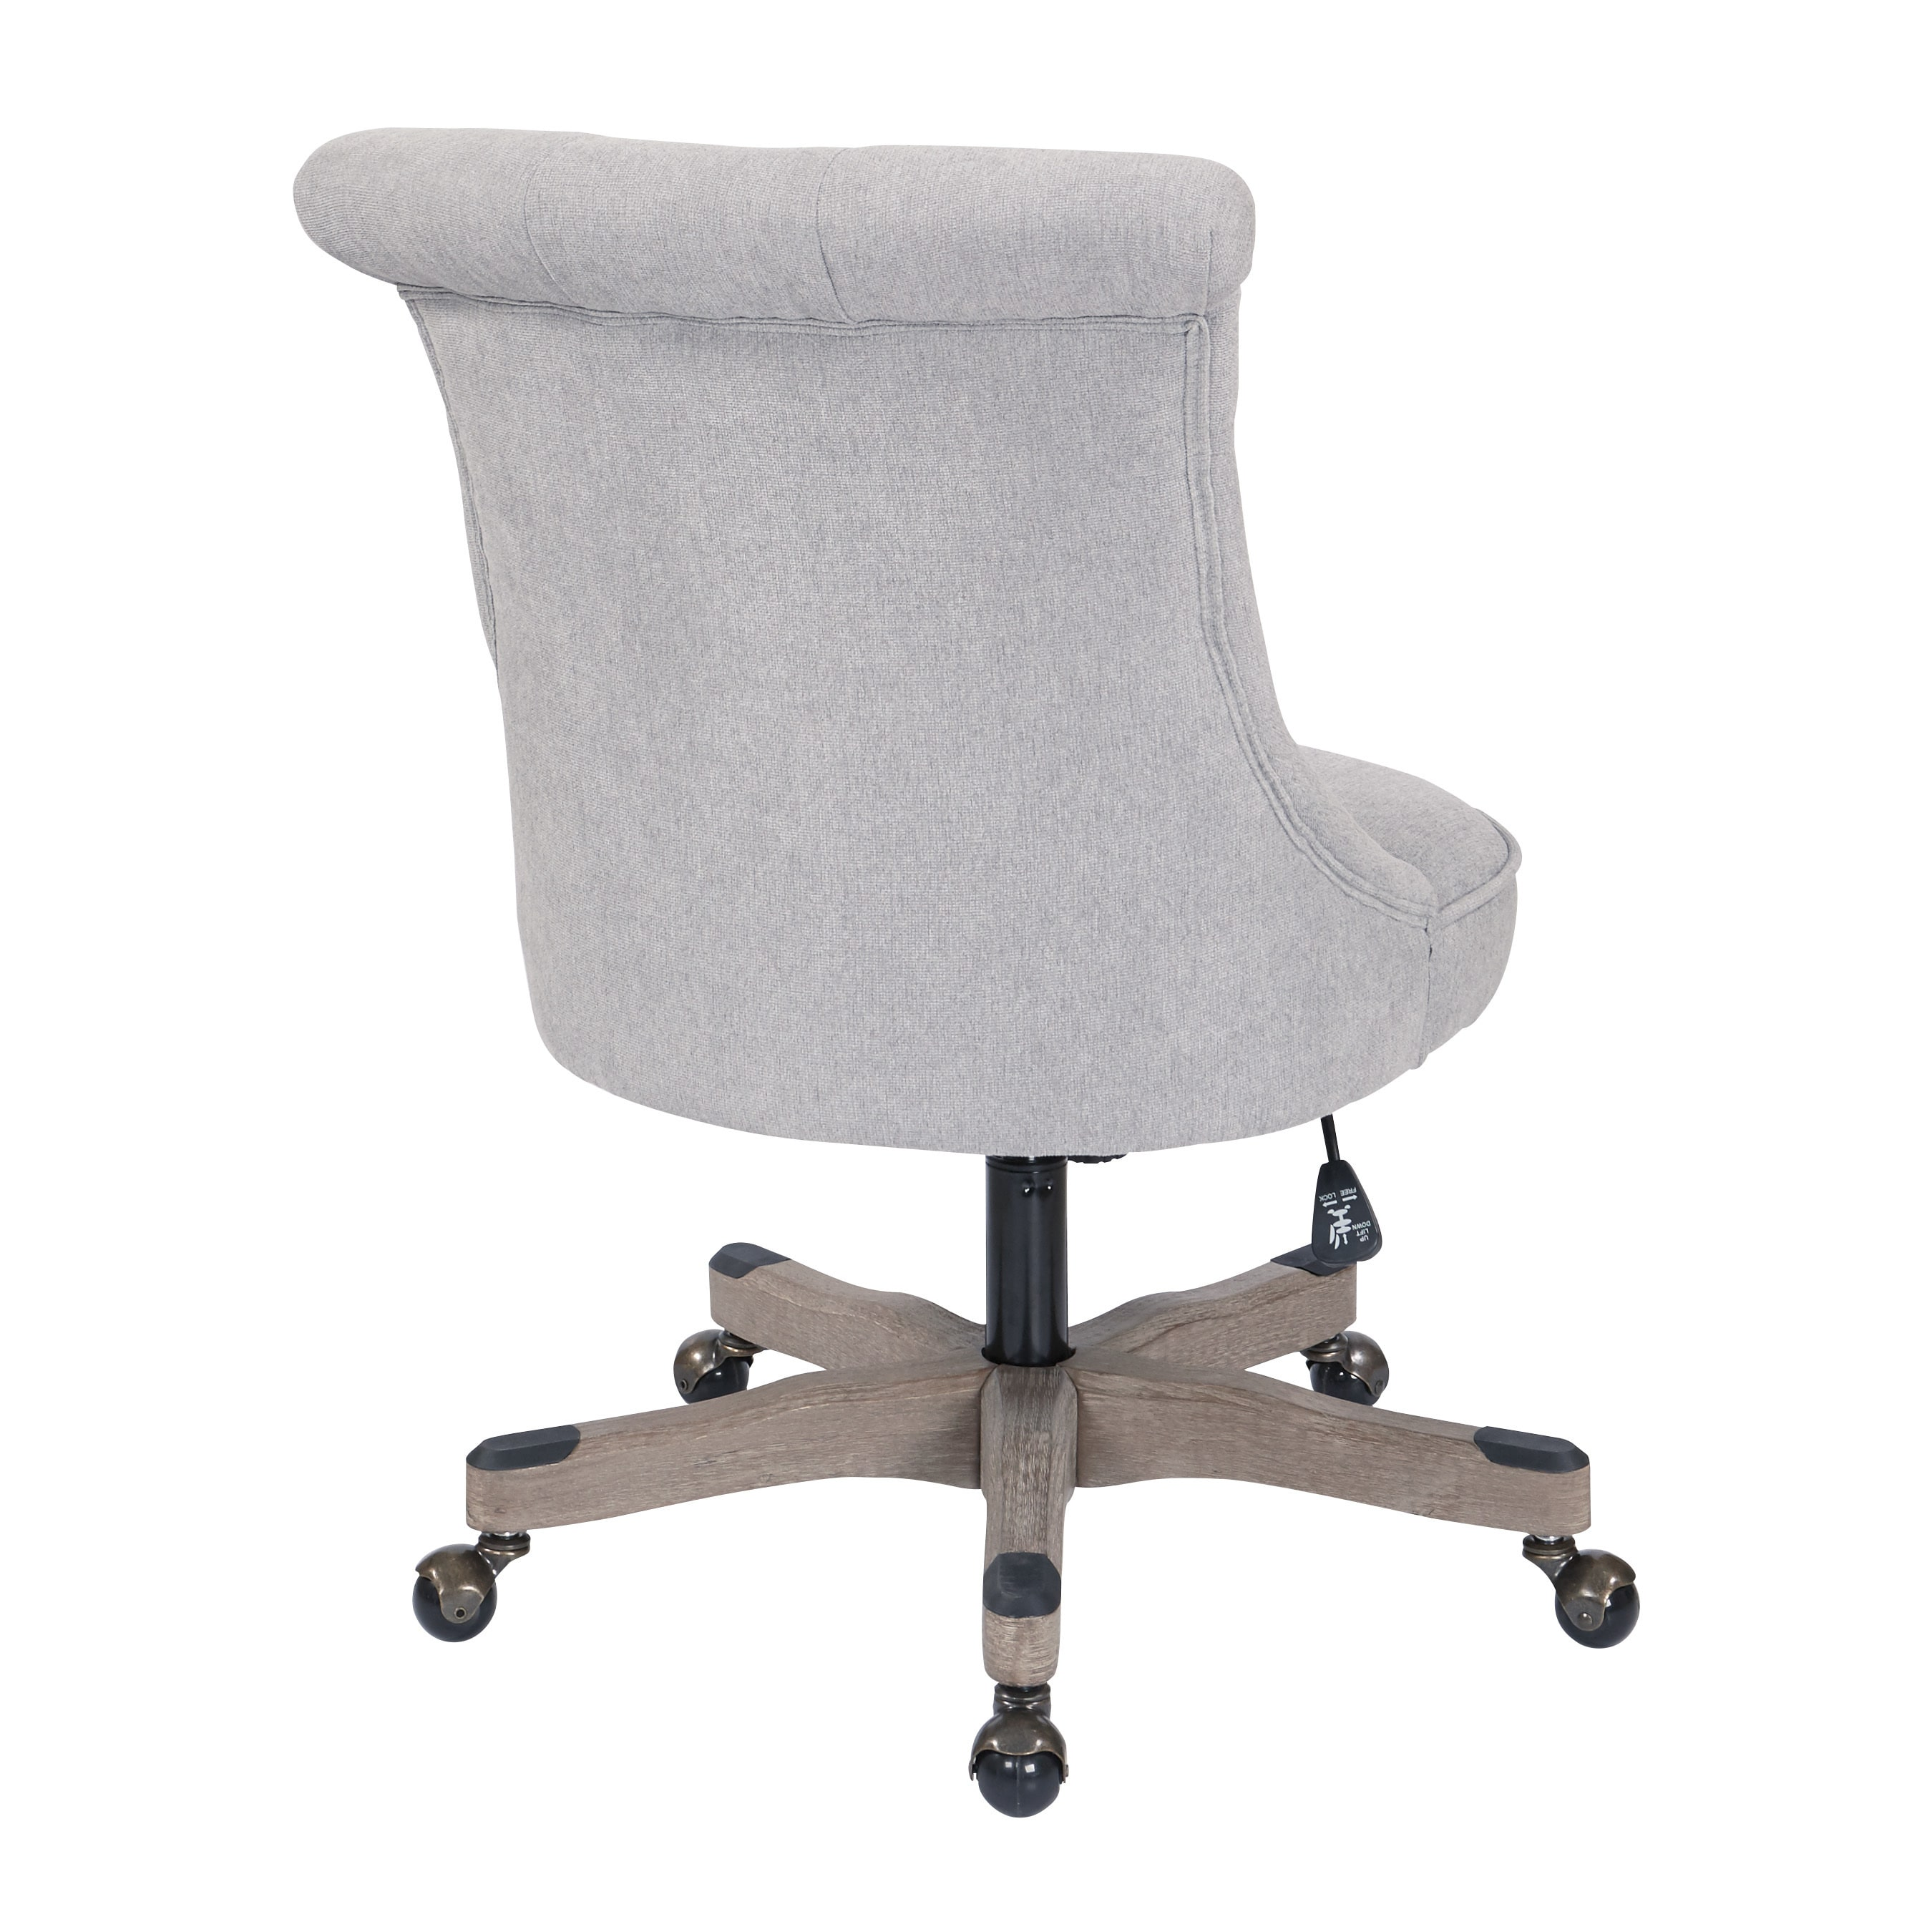 modern upholstered tufted awesome of swivel chair lovely new fice desk